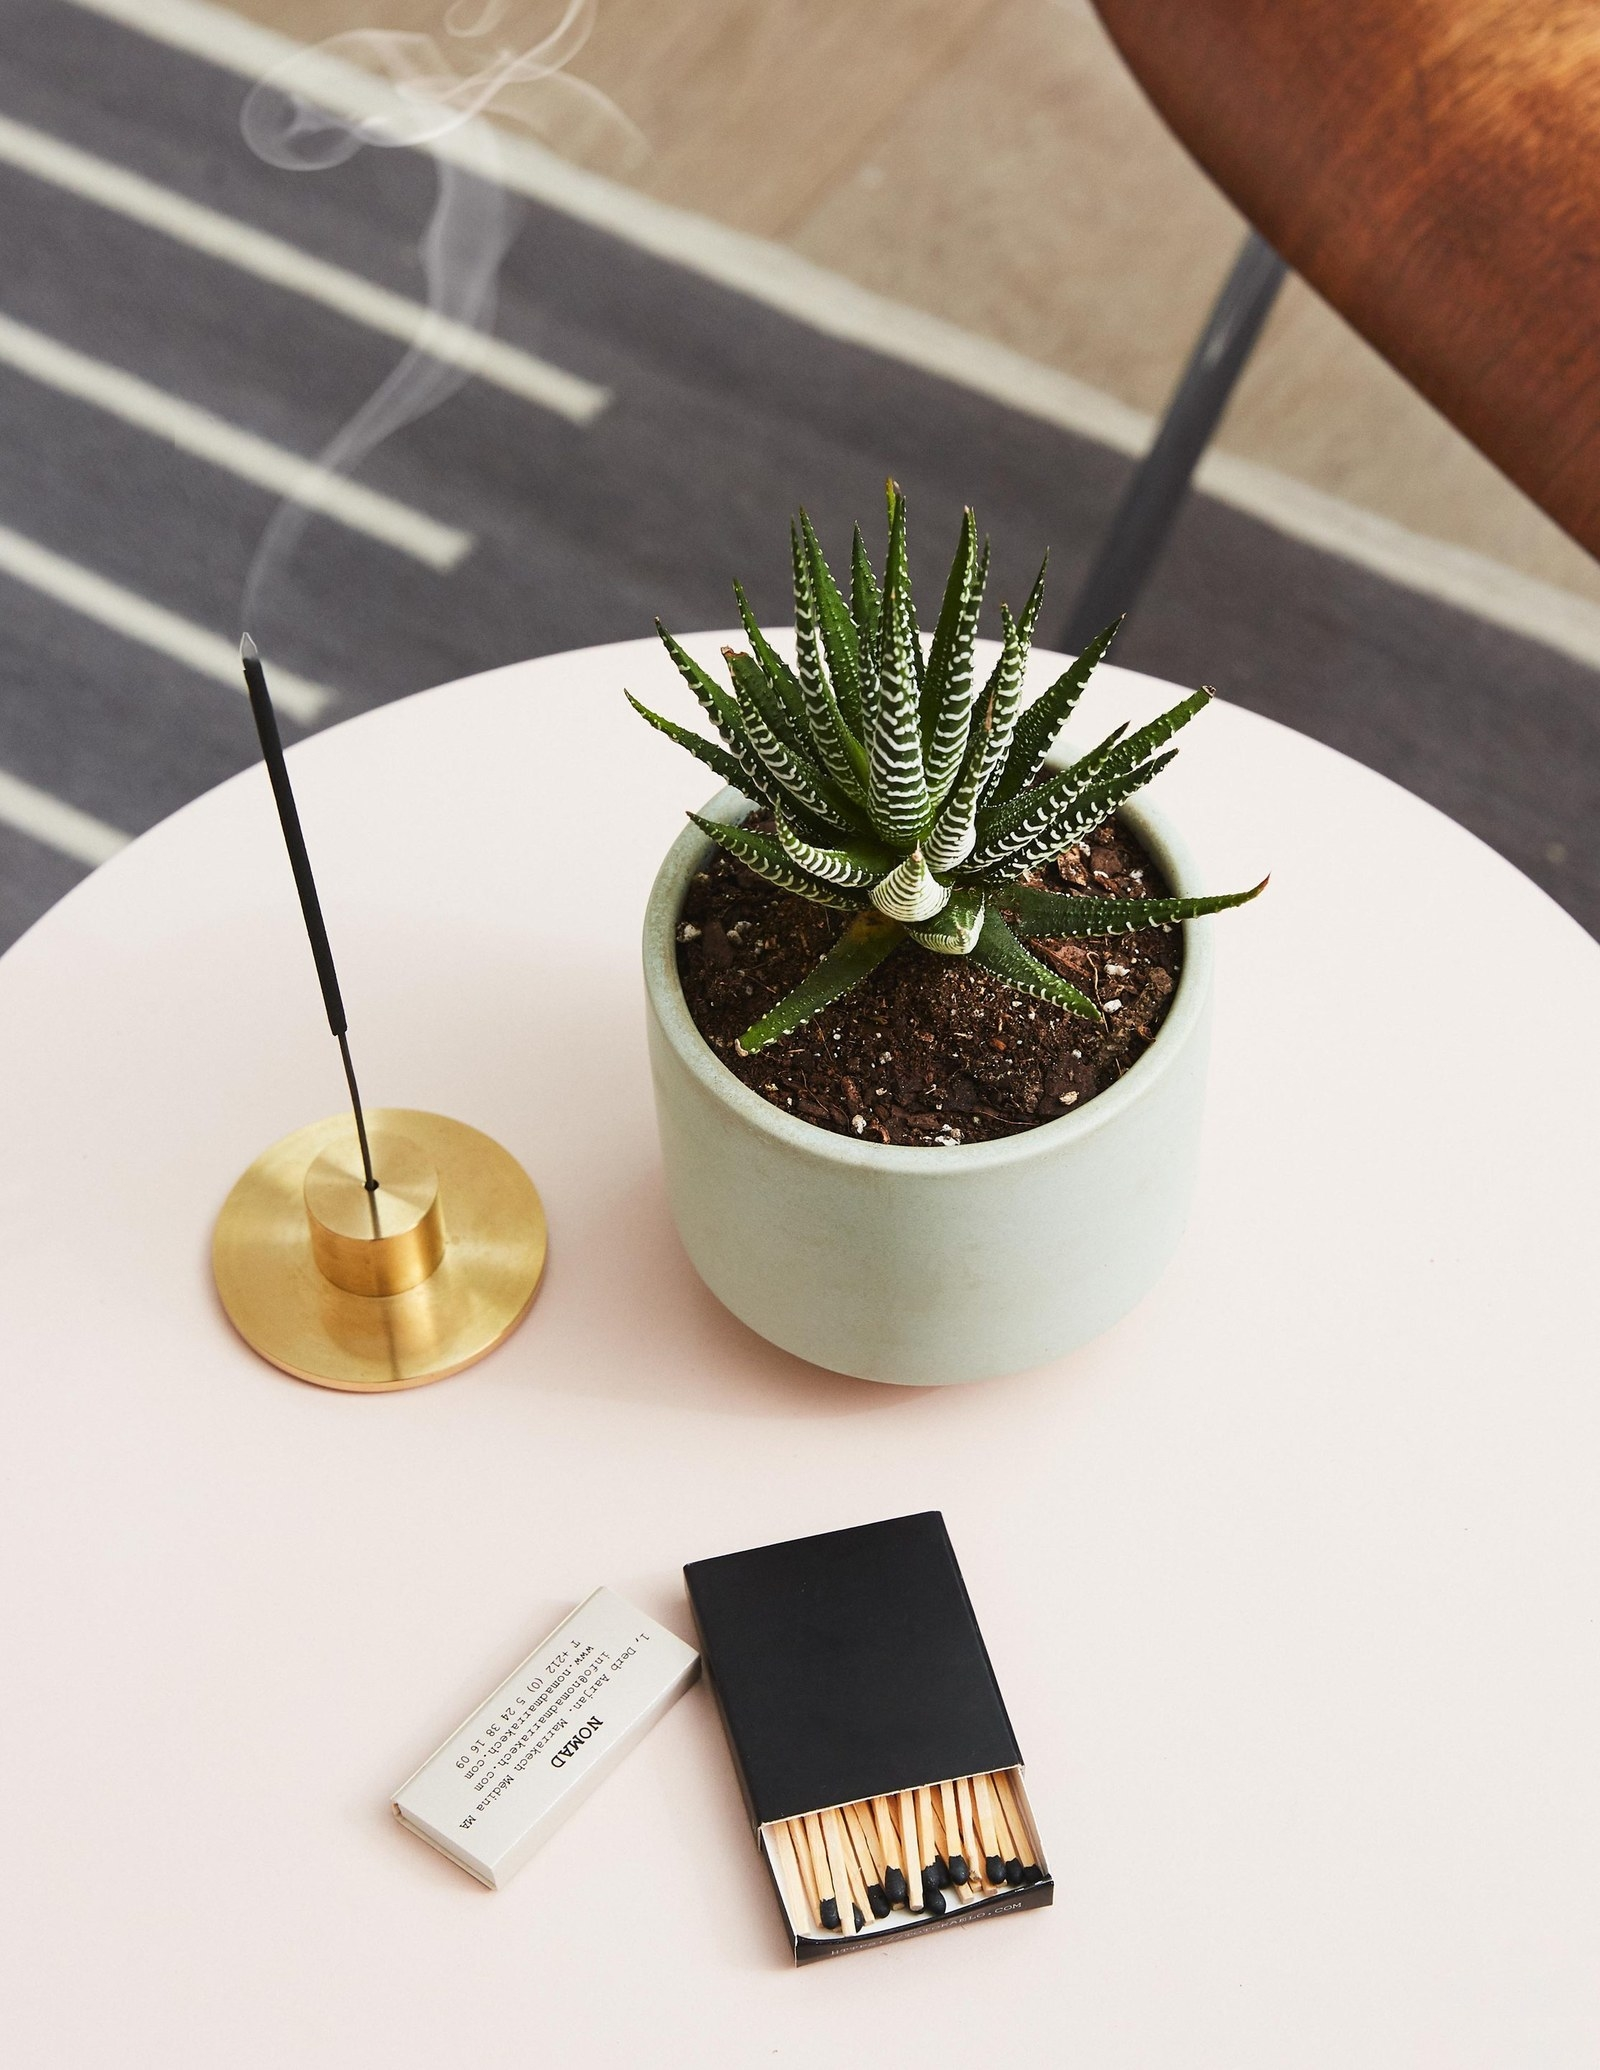 This Haworthia Zebra plant comes already potted in the planter shown.Get it from The Sill for $31 (available in five planter colors).